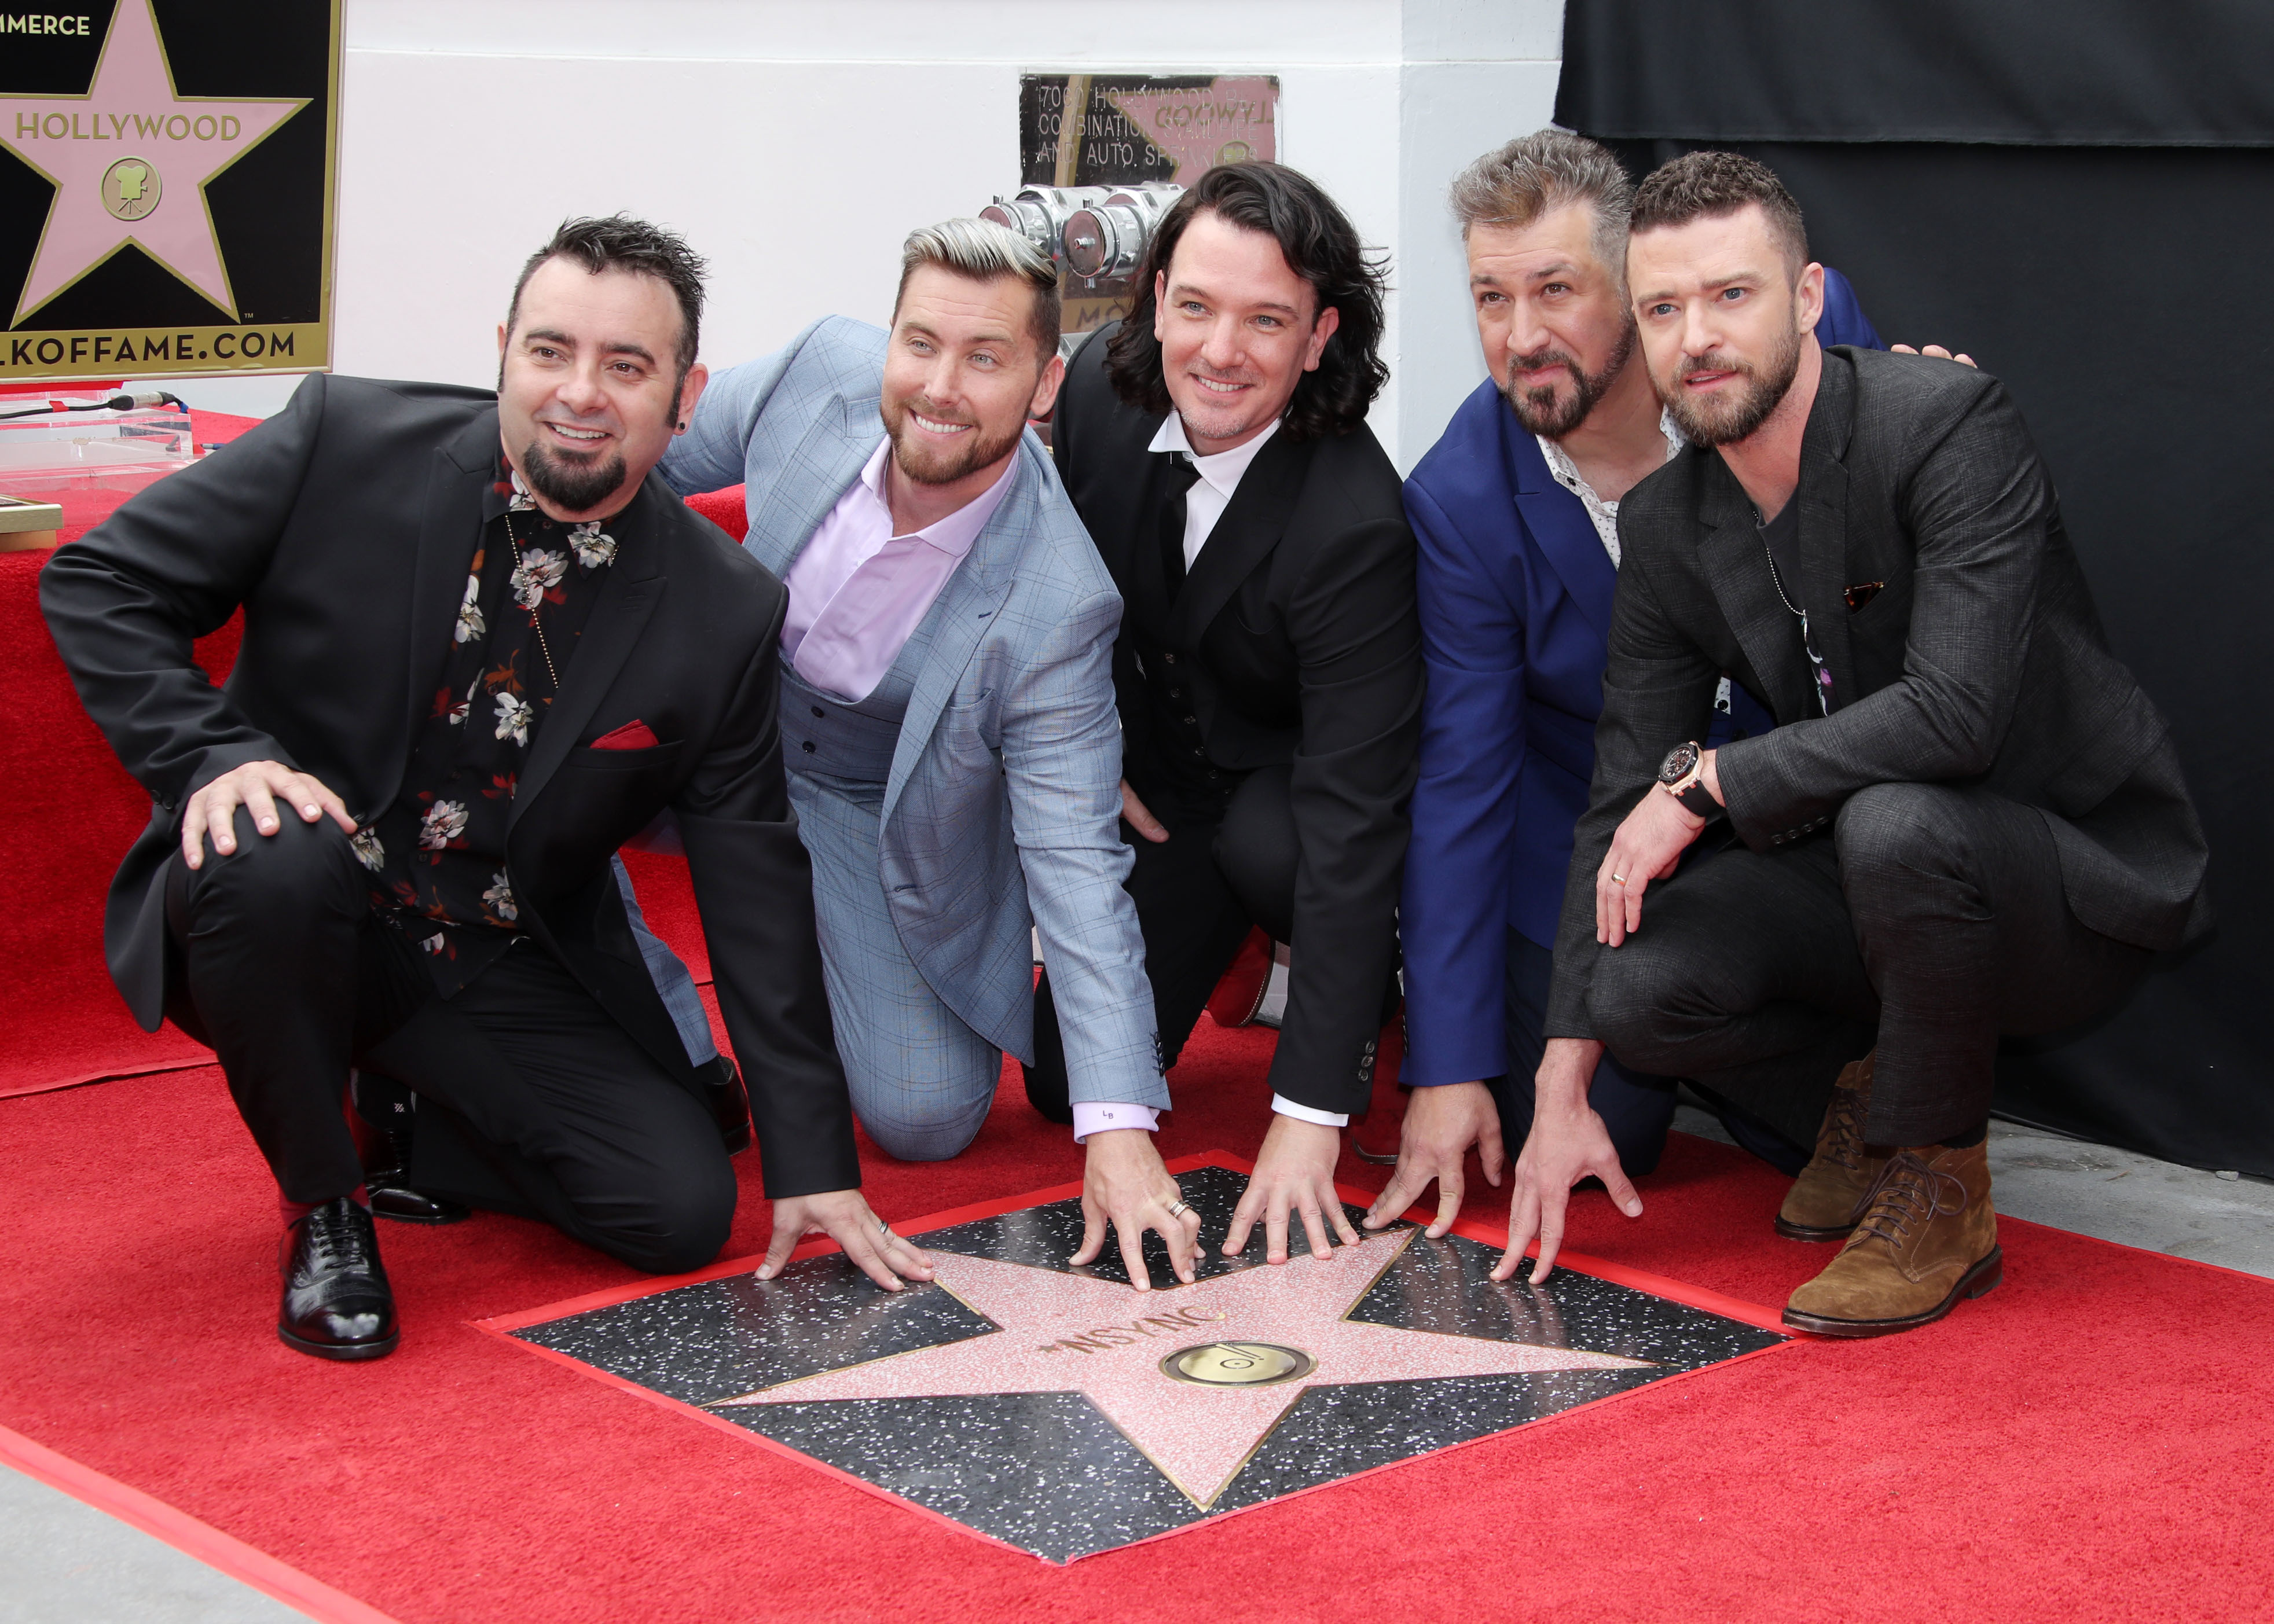 Chris Kirkpatrick, Joey Fatone, JC Chasez, Justin Timberlake and Lance Bass of *NSYNC are honored with a star on the Hollywood Walk of Fame on April 30, 2018.